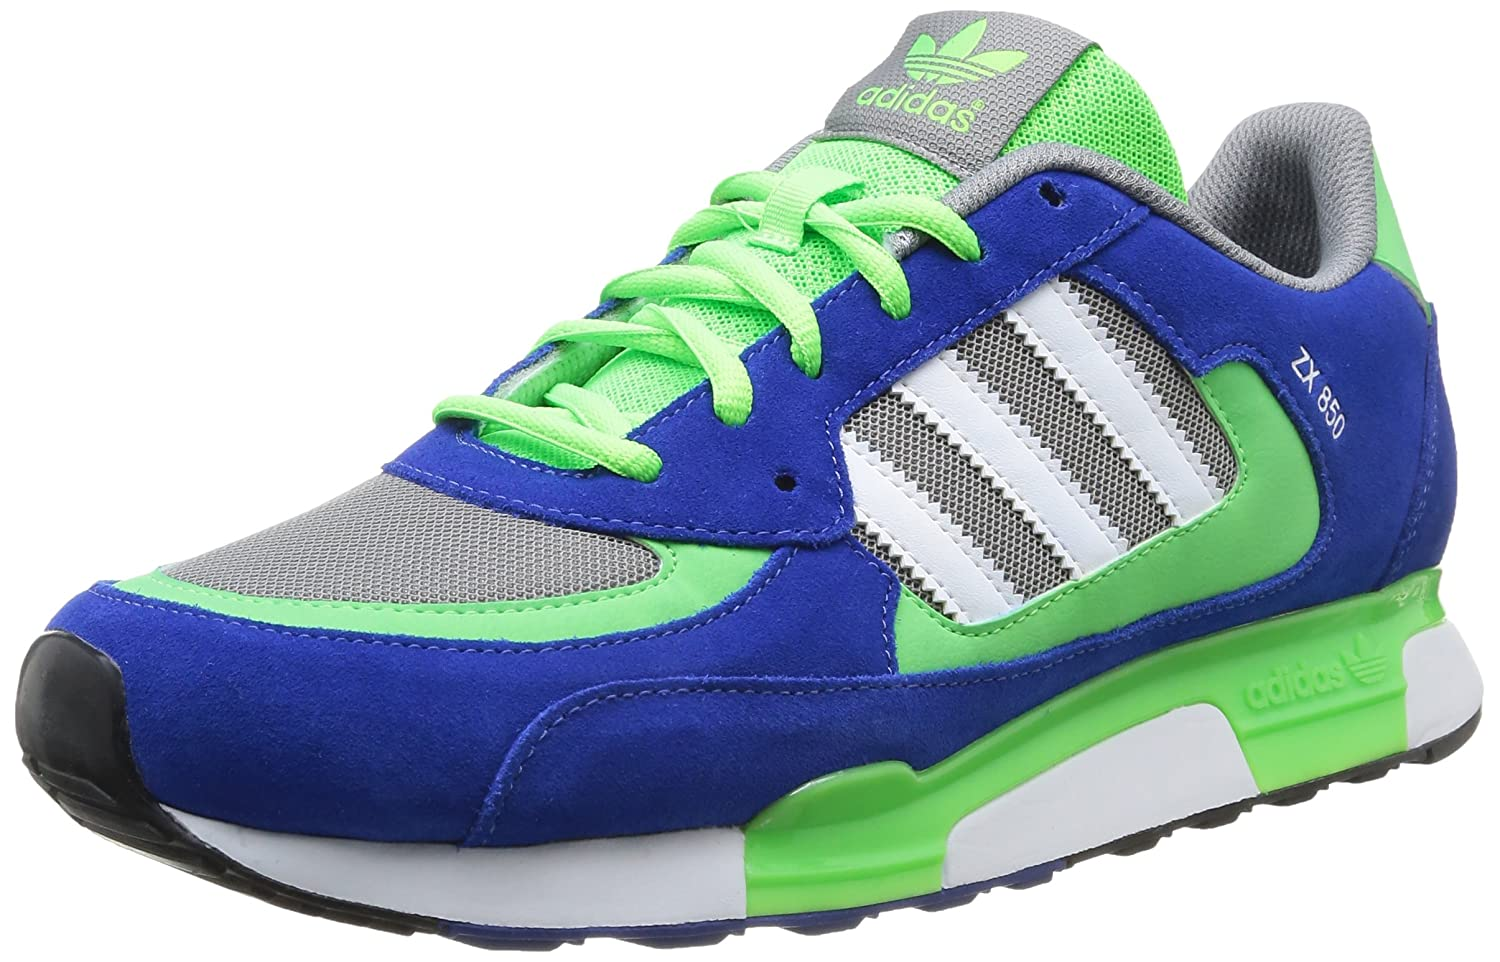 adidas zx 850 trainers sale